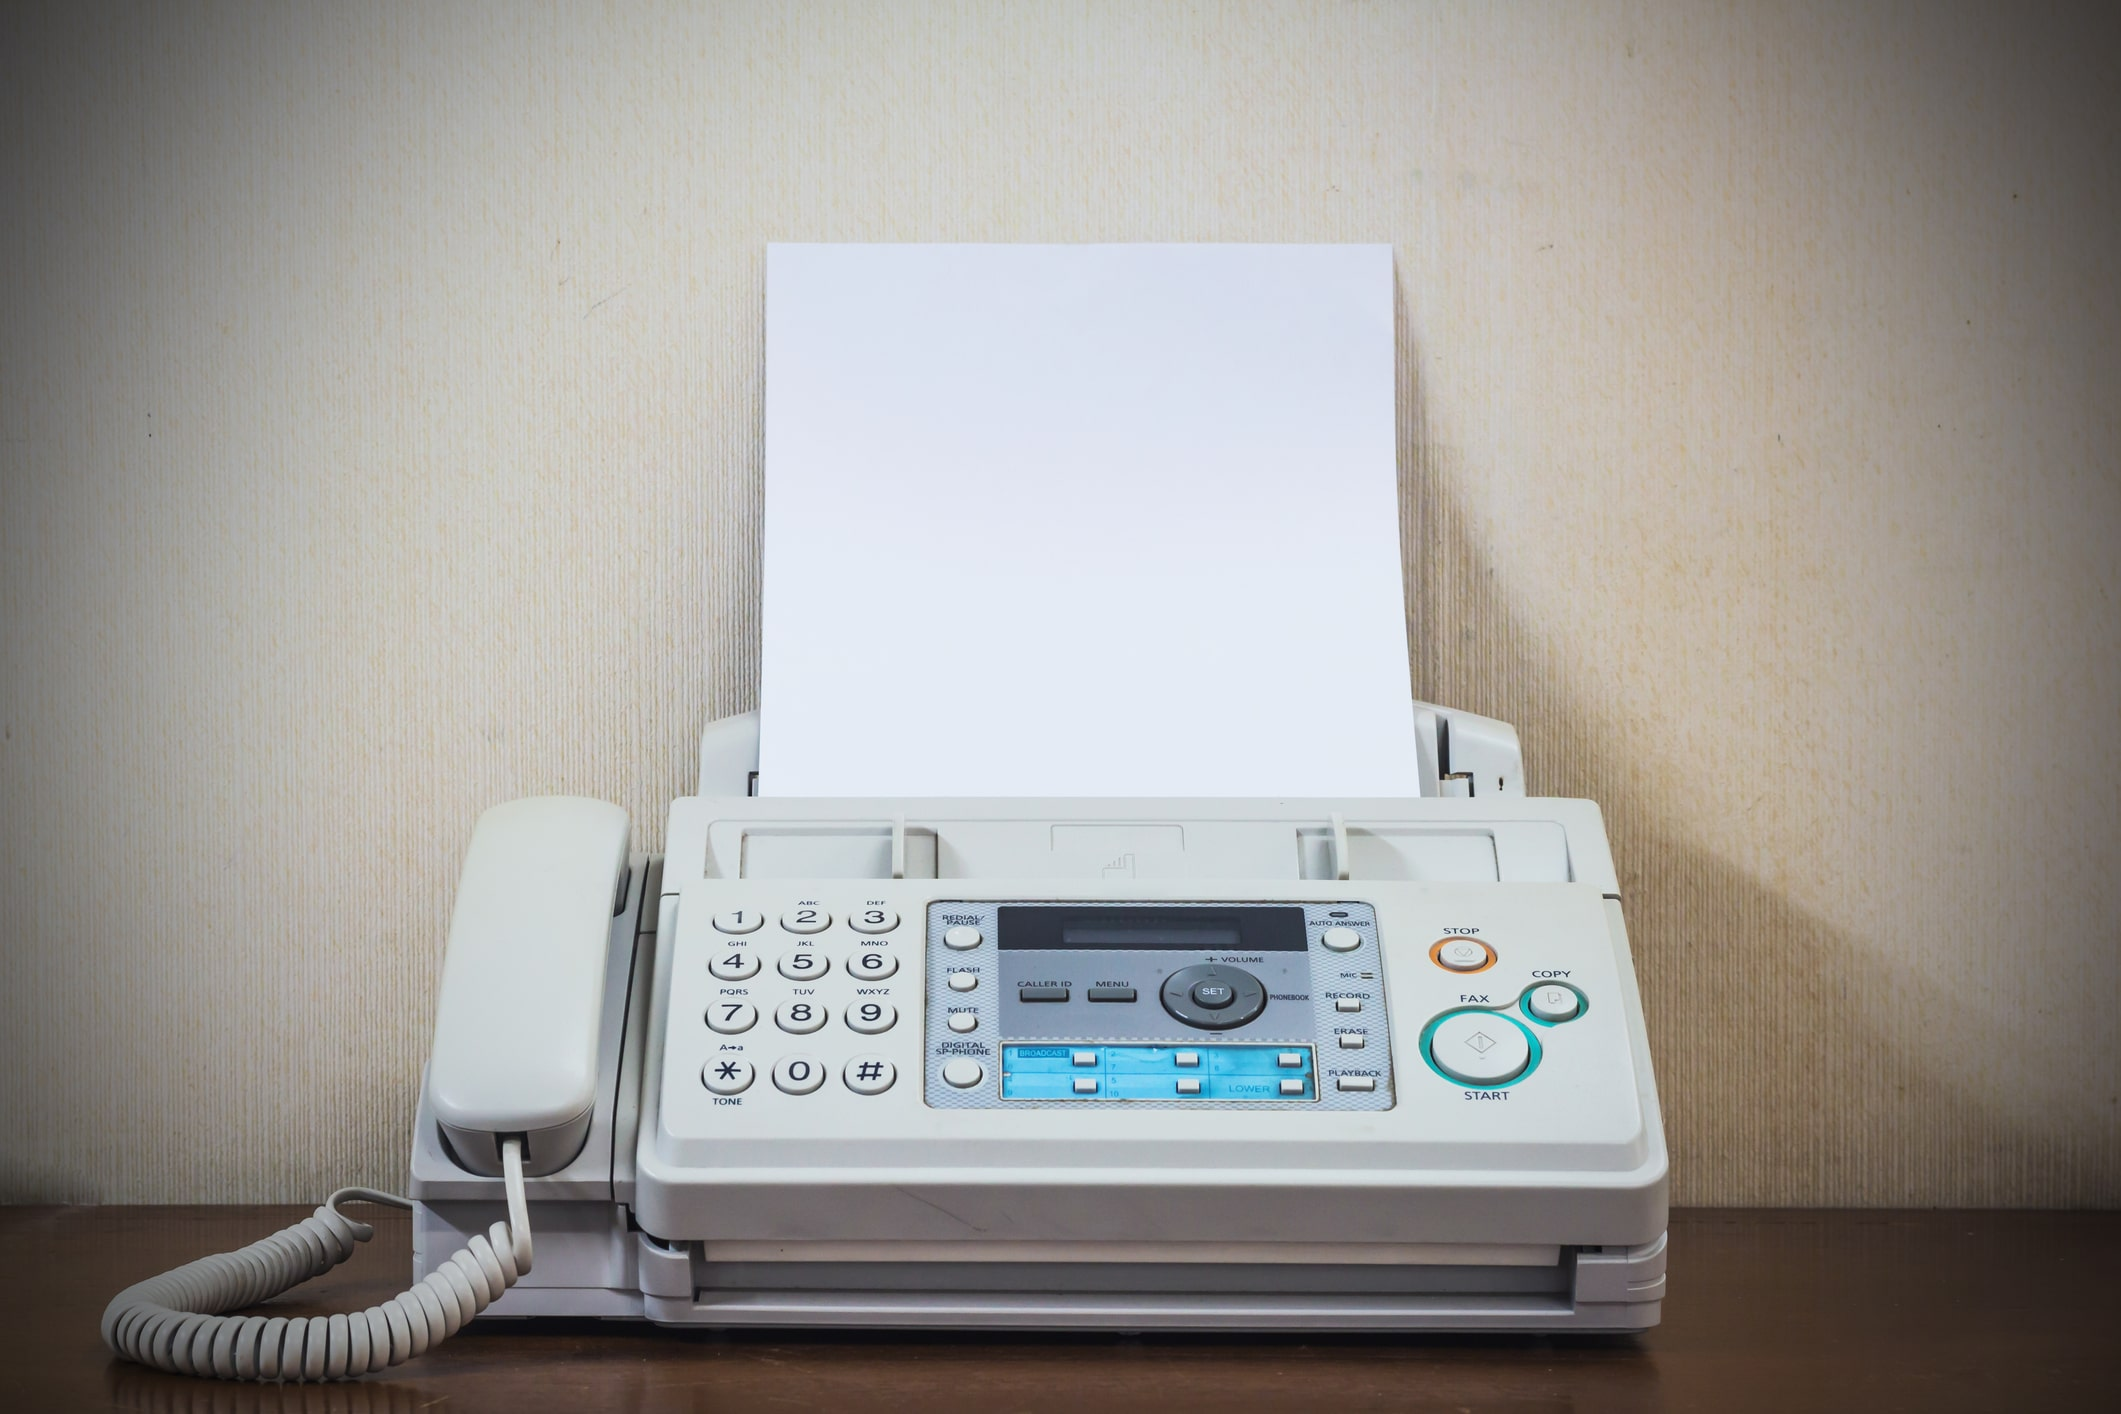 still-of-old-thermal-printing-fax-machine